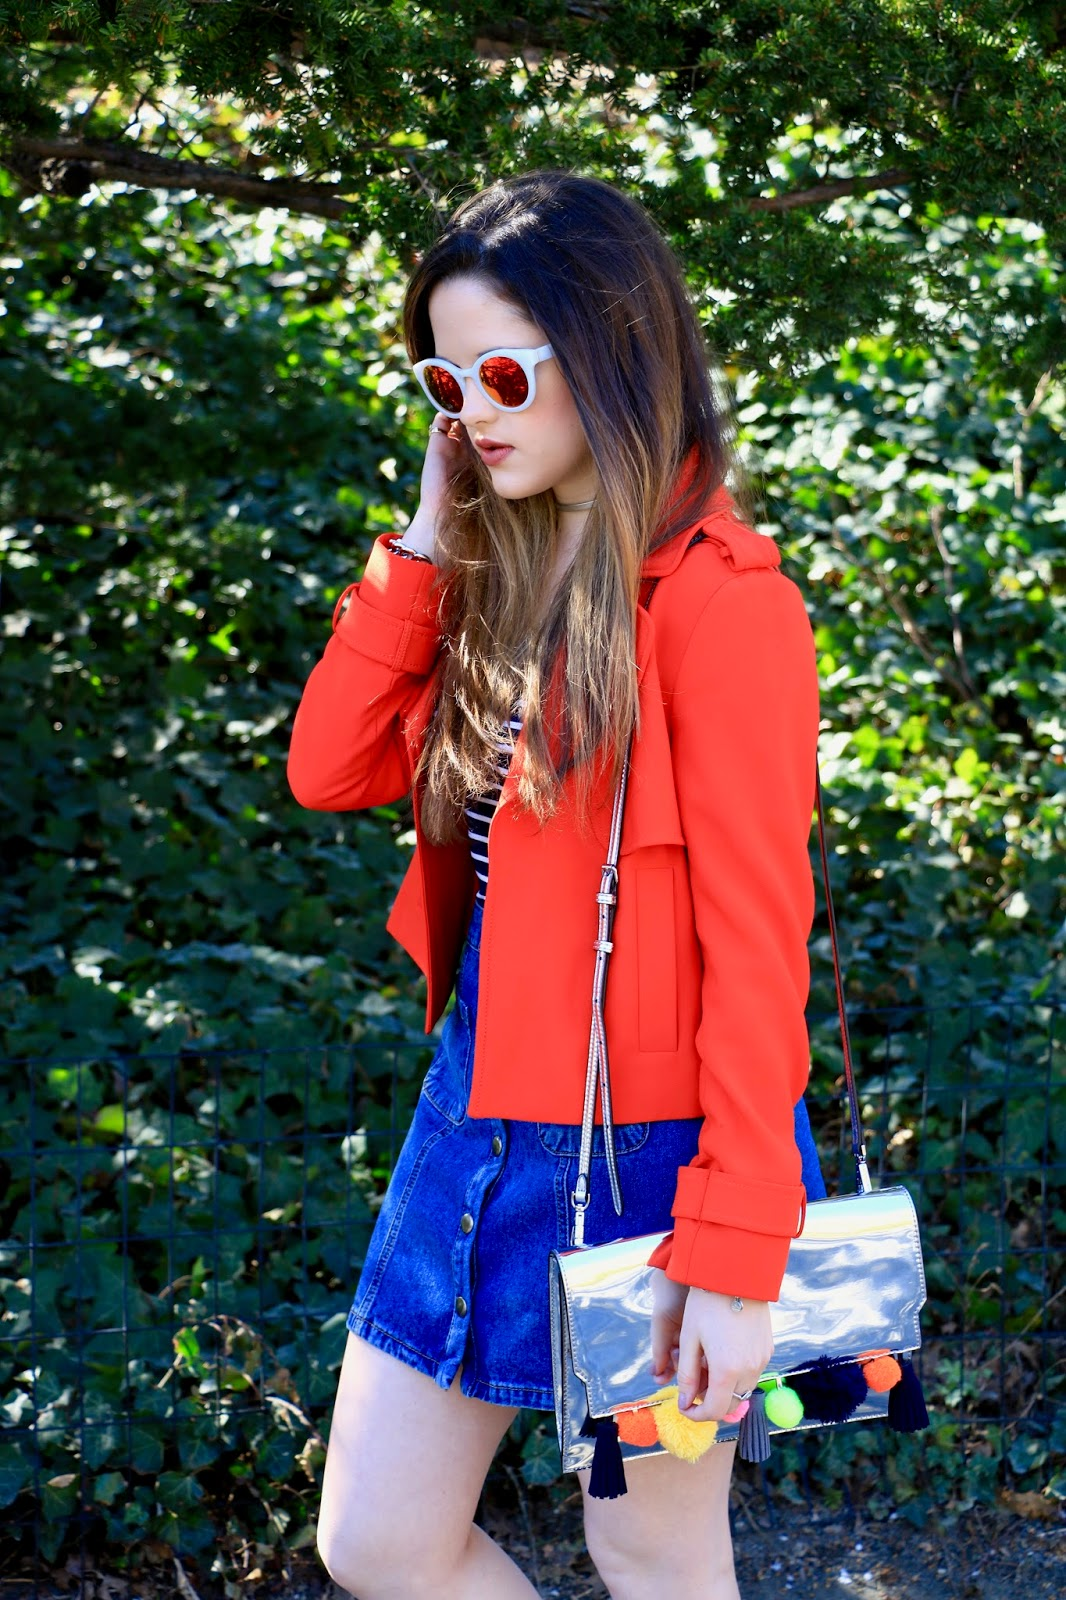 orange jacket worn with denim skirt